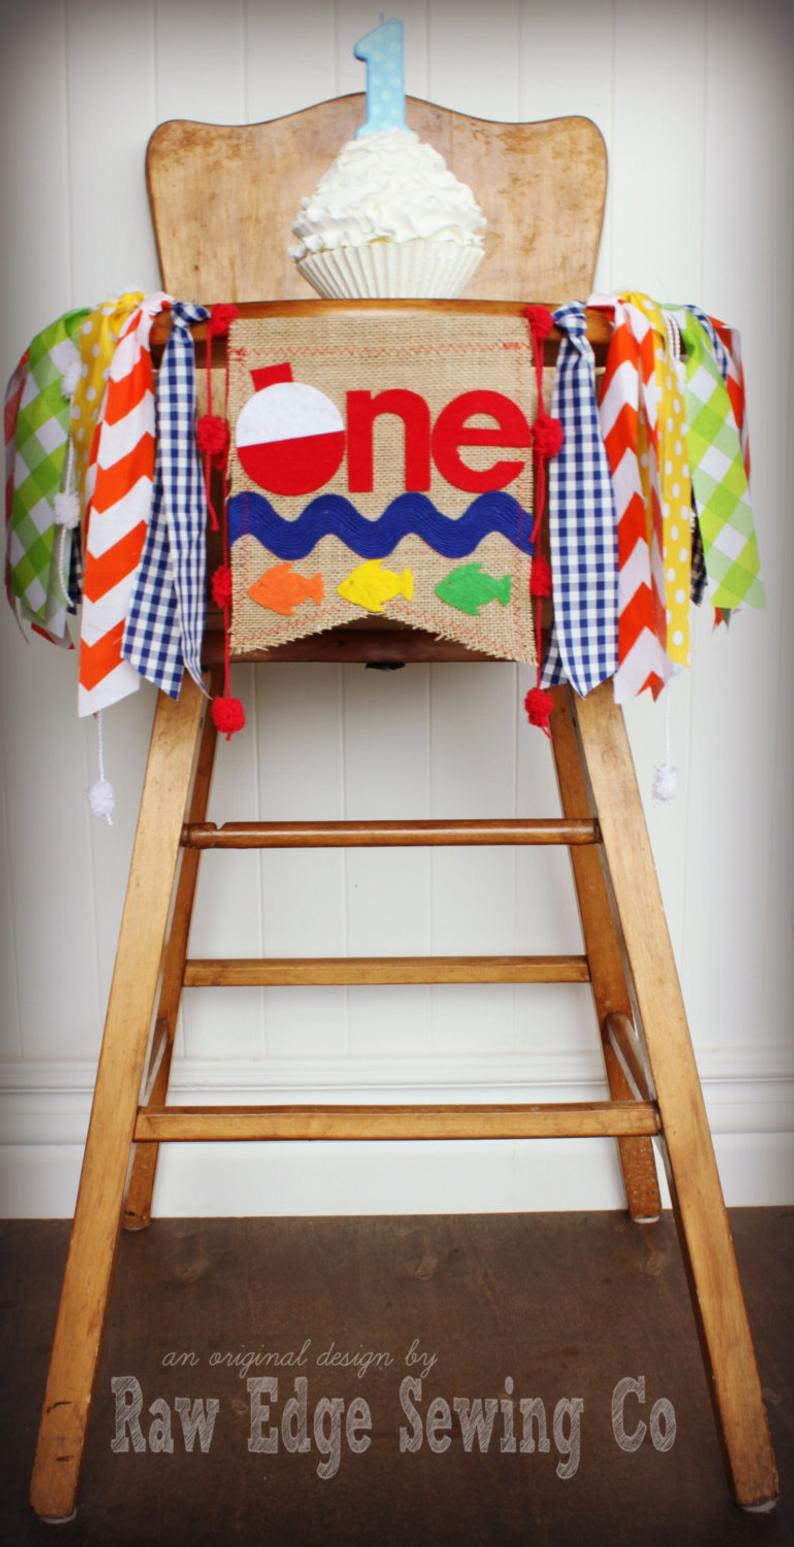 Fishing Highchair Banner 1st Birthday Party Decoration - Raw Edge Sewing Co